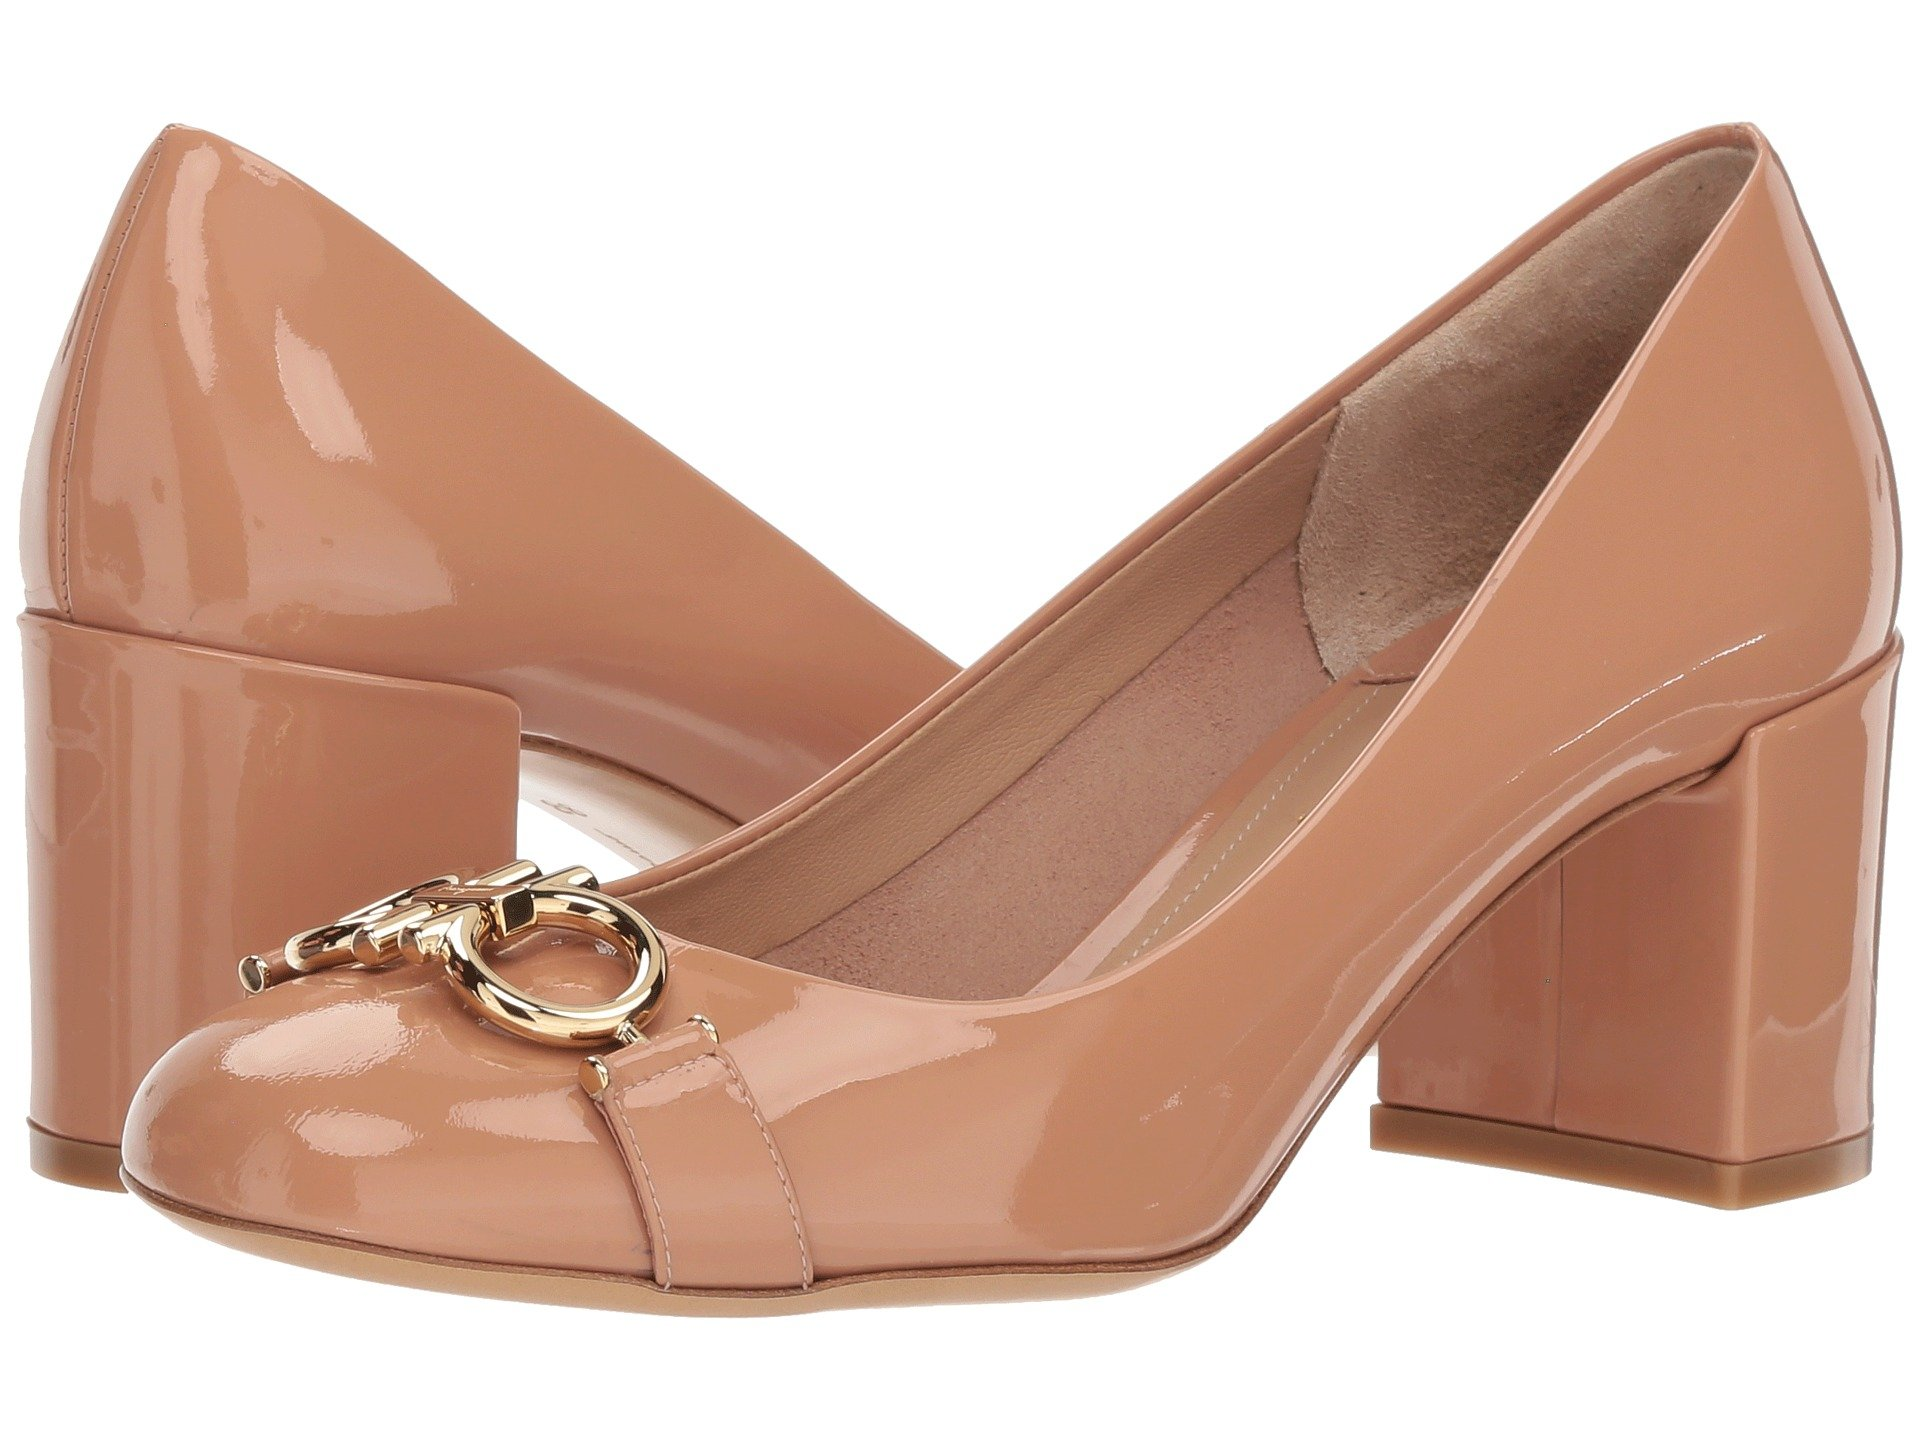 3add2fa542096 Salvatore Ferragamo Garda Round Toe Pump at Luxury.Zappos.com